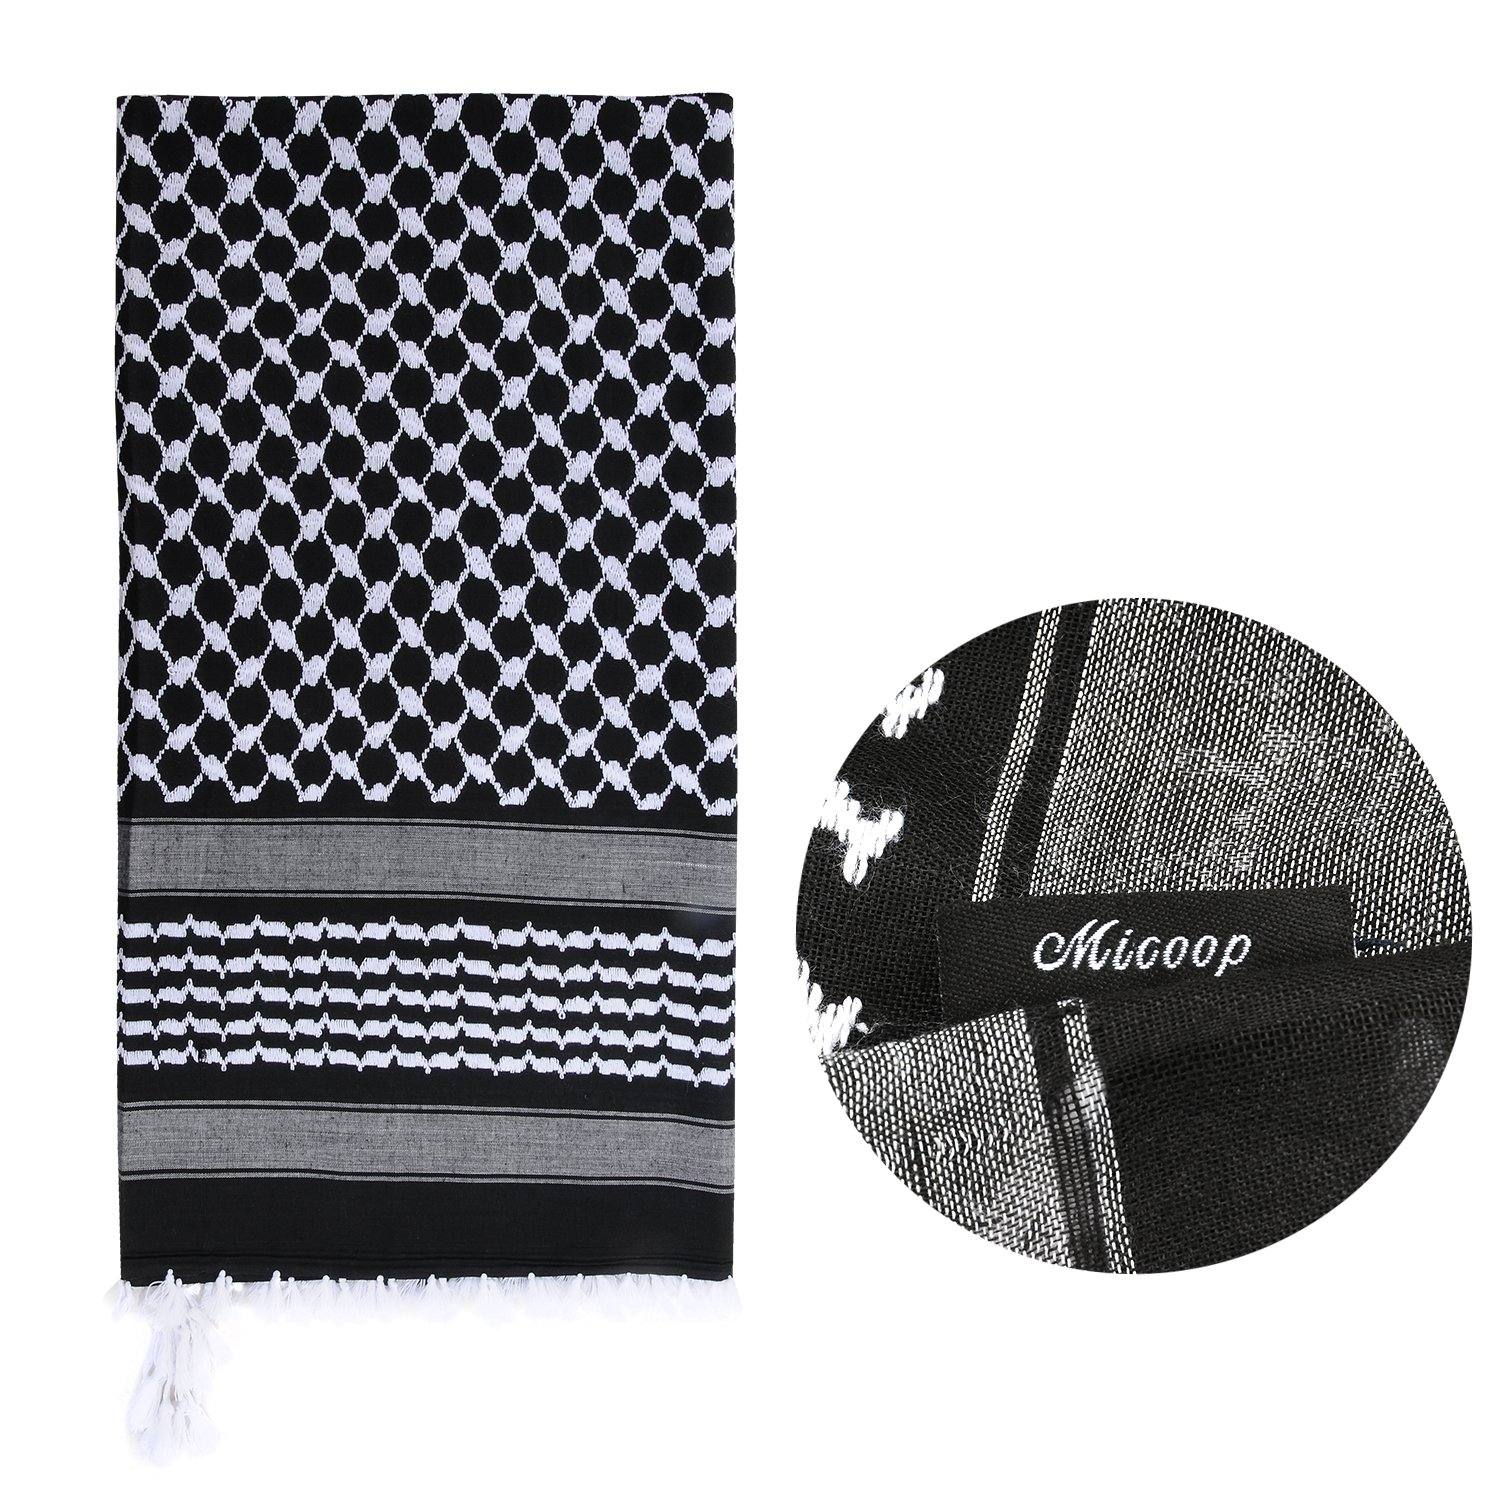 Micoop Large Size Premium Shemagh Scarf Arab Military Tactical Desert Scarf Wrap with Fine Tassels, 2-Pack (White Black & Black White) by Micoop (Image #5)